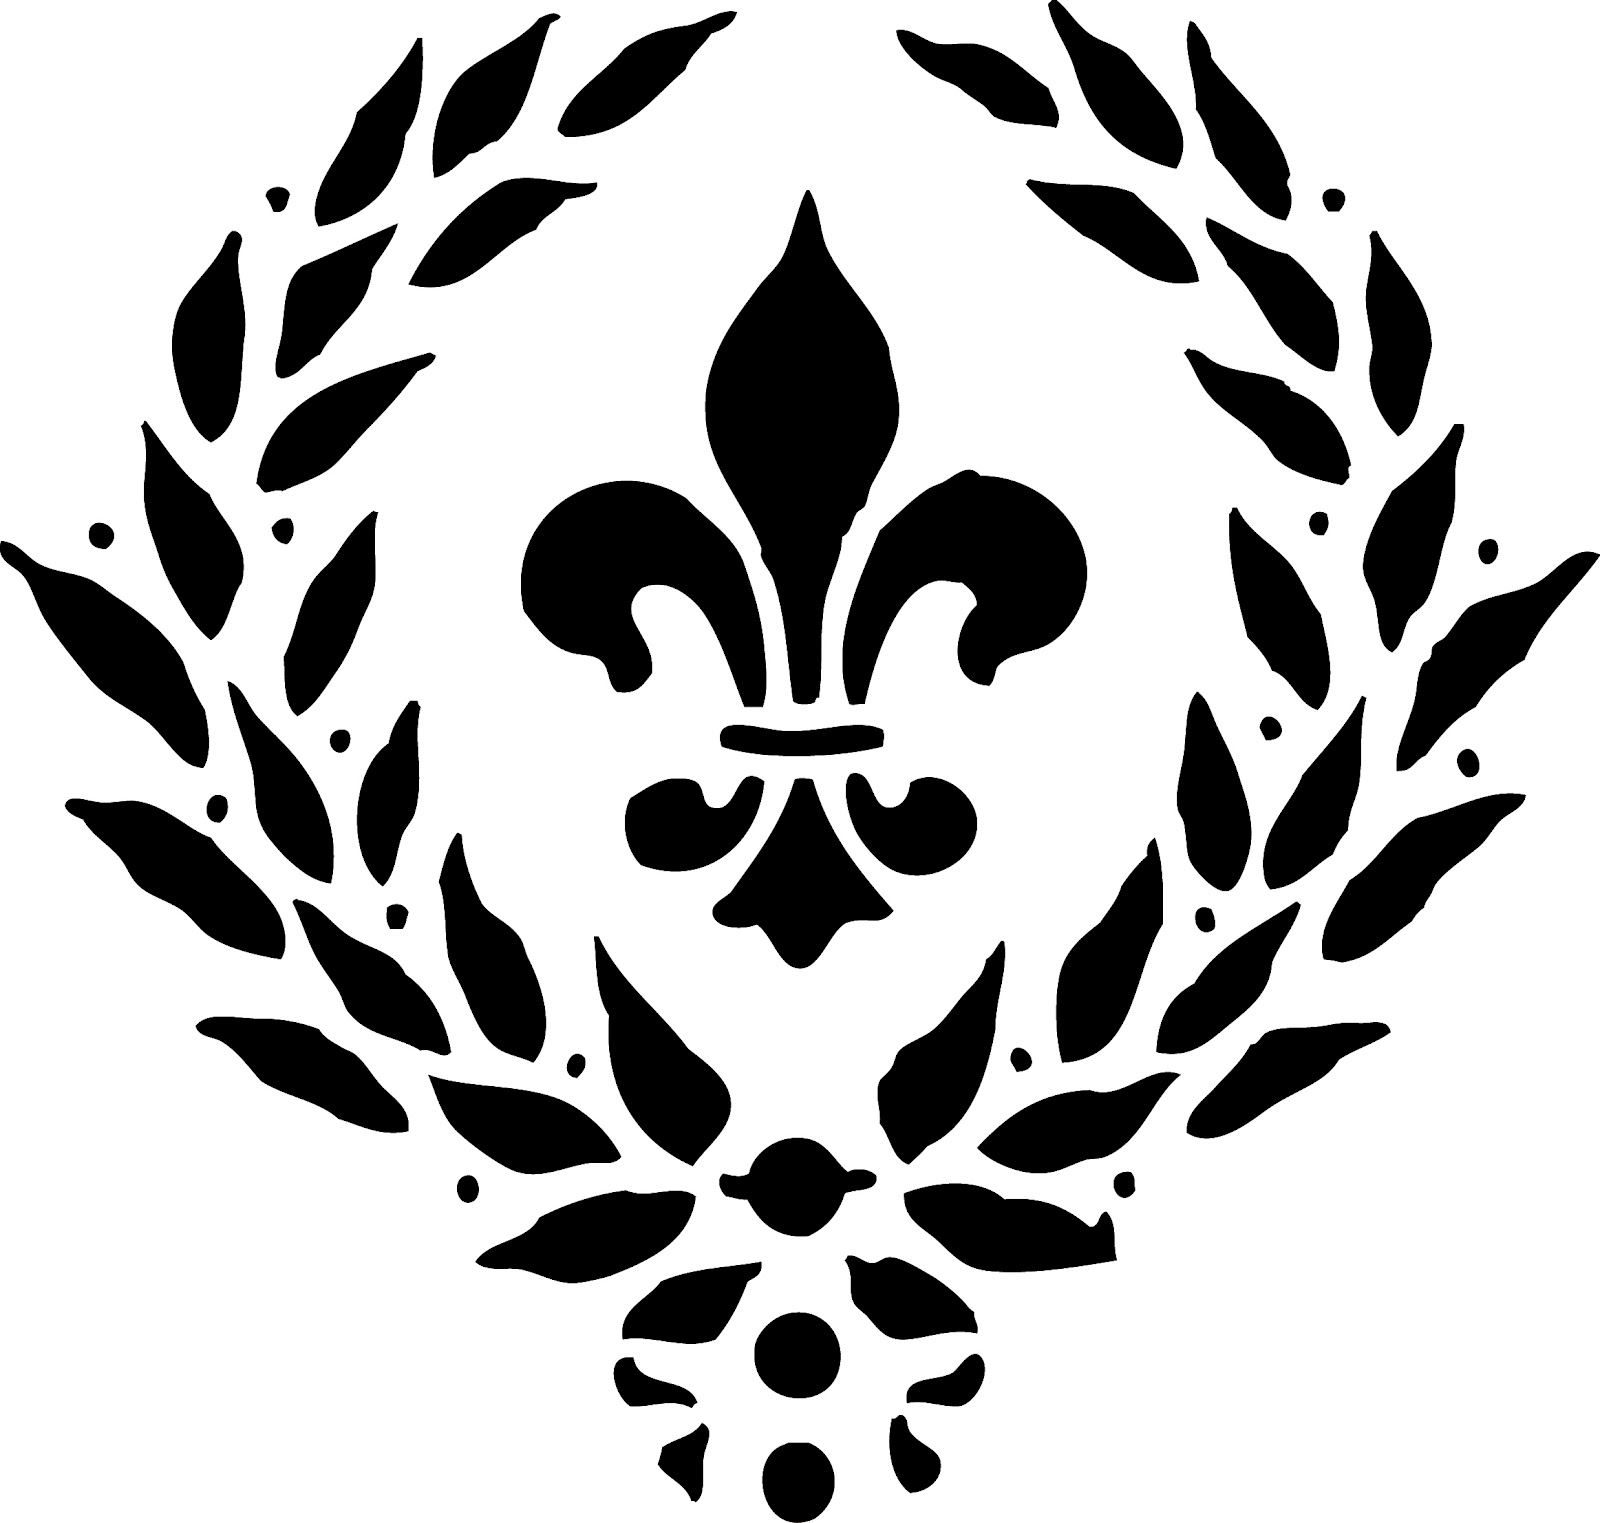 hight resolution of fleur de lis clip art image 32607